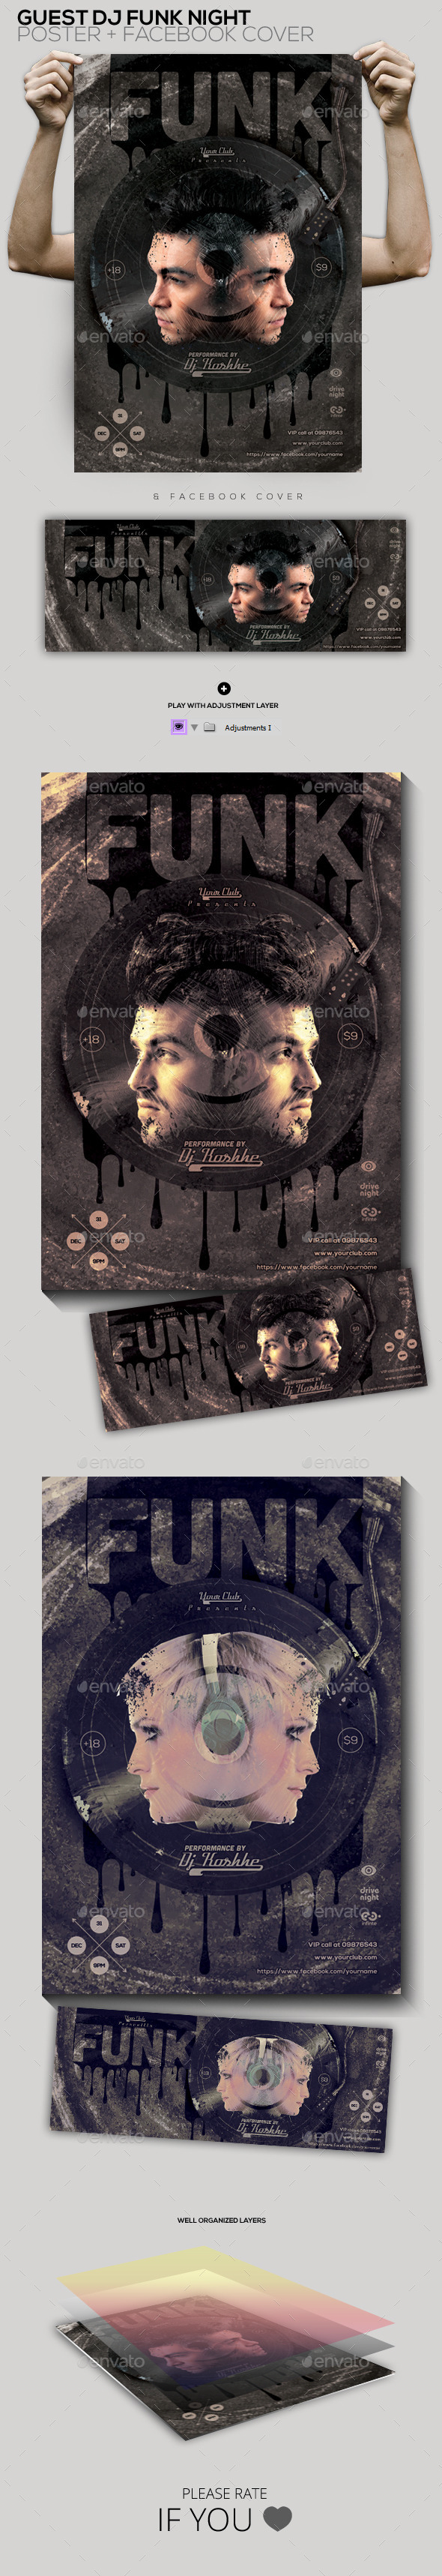 Funk Guest Dj Party Flyer/Poster/Facebook Cover - Clubs & Parties Events